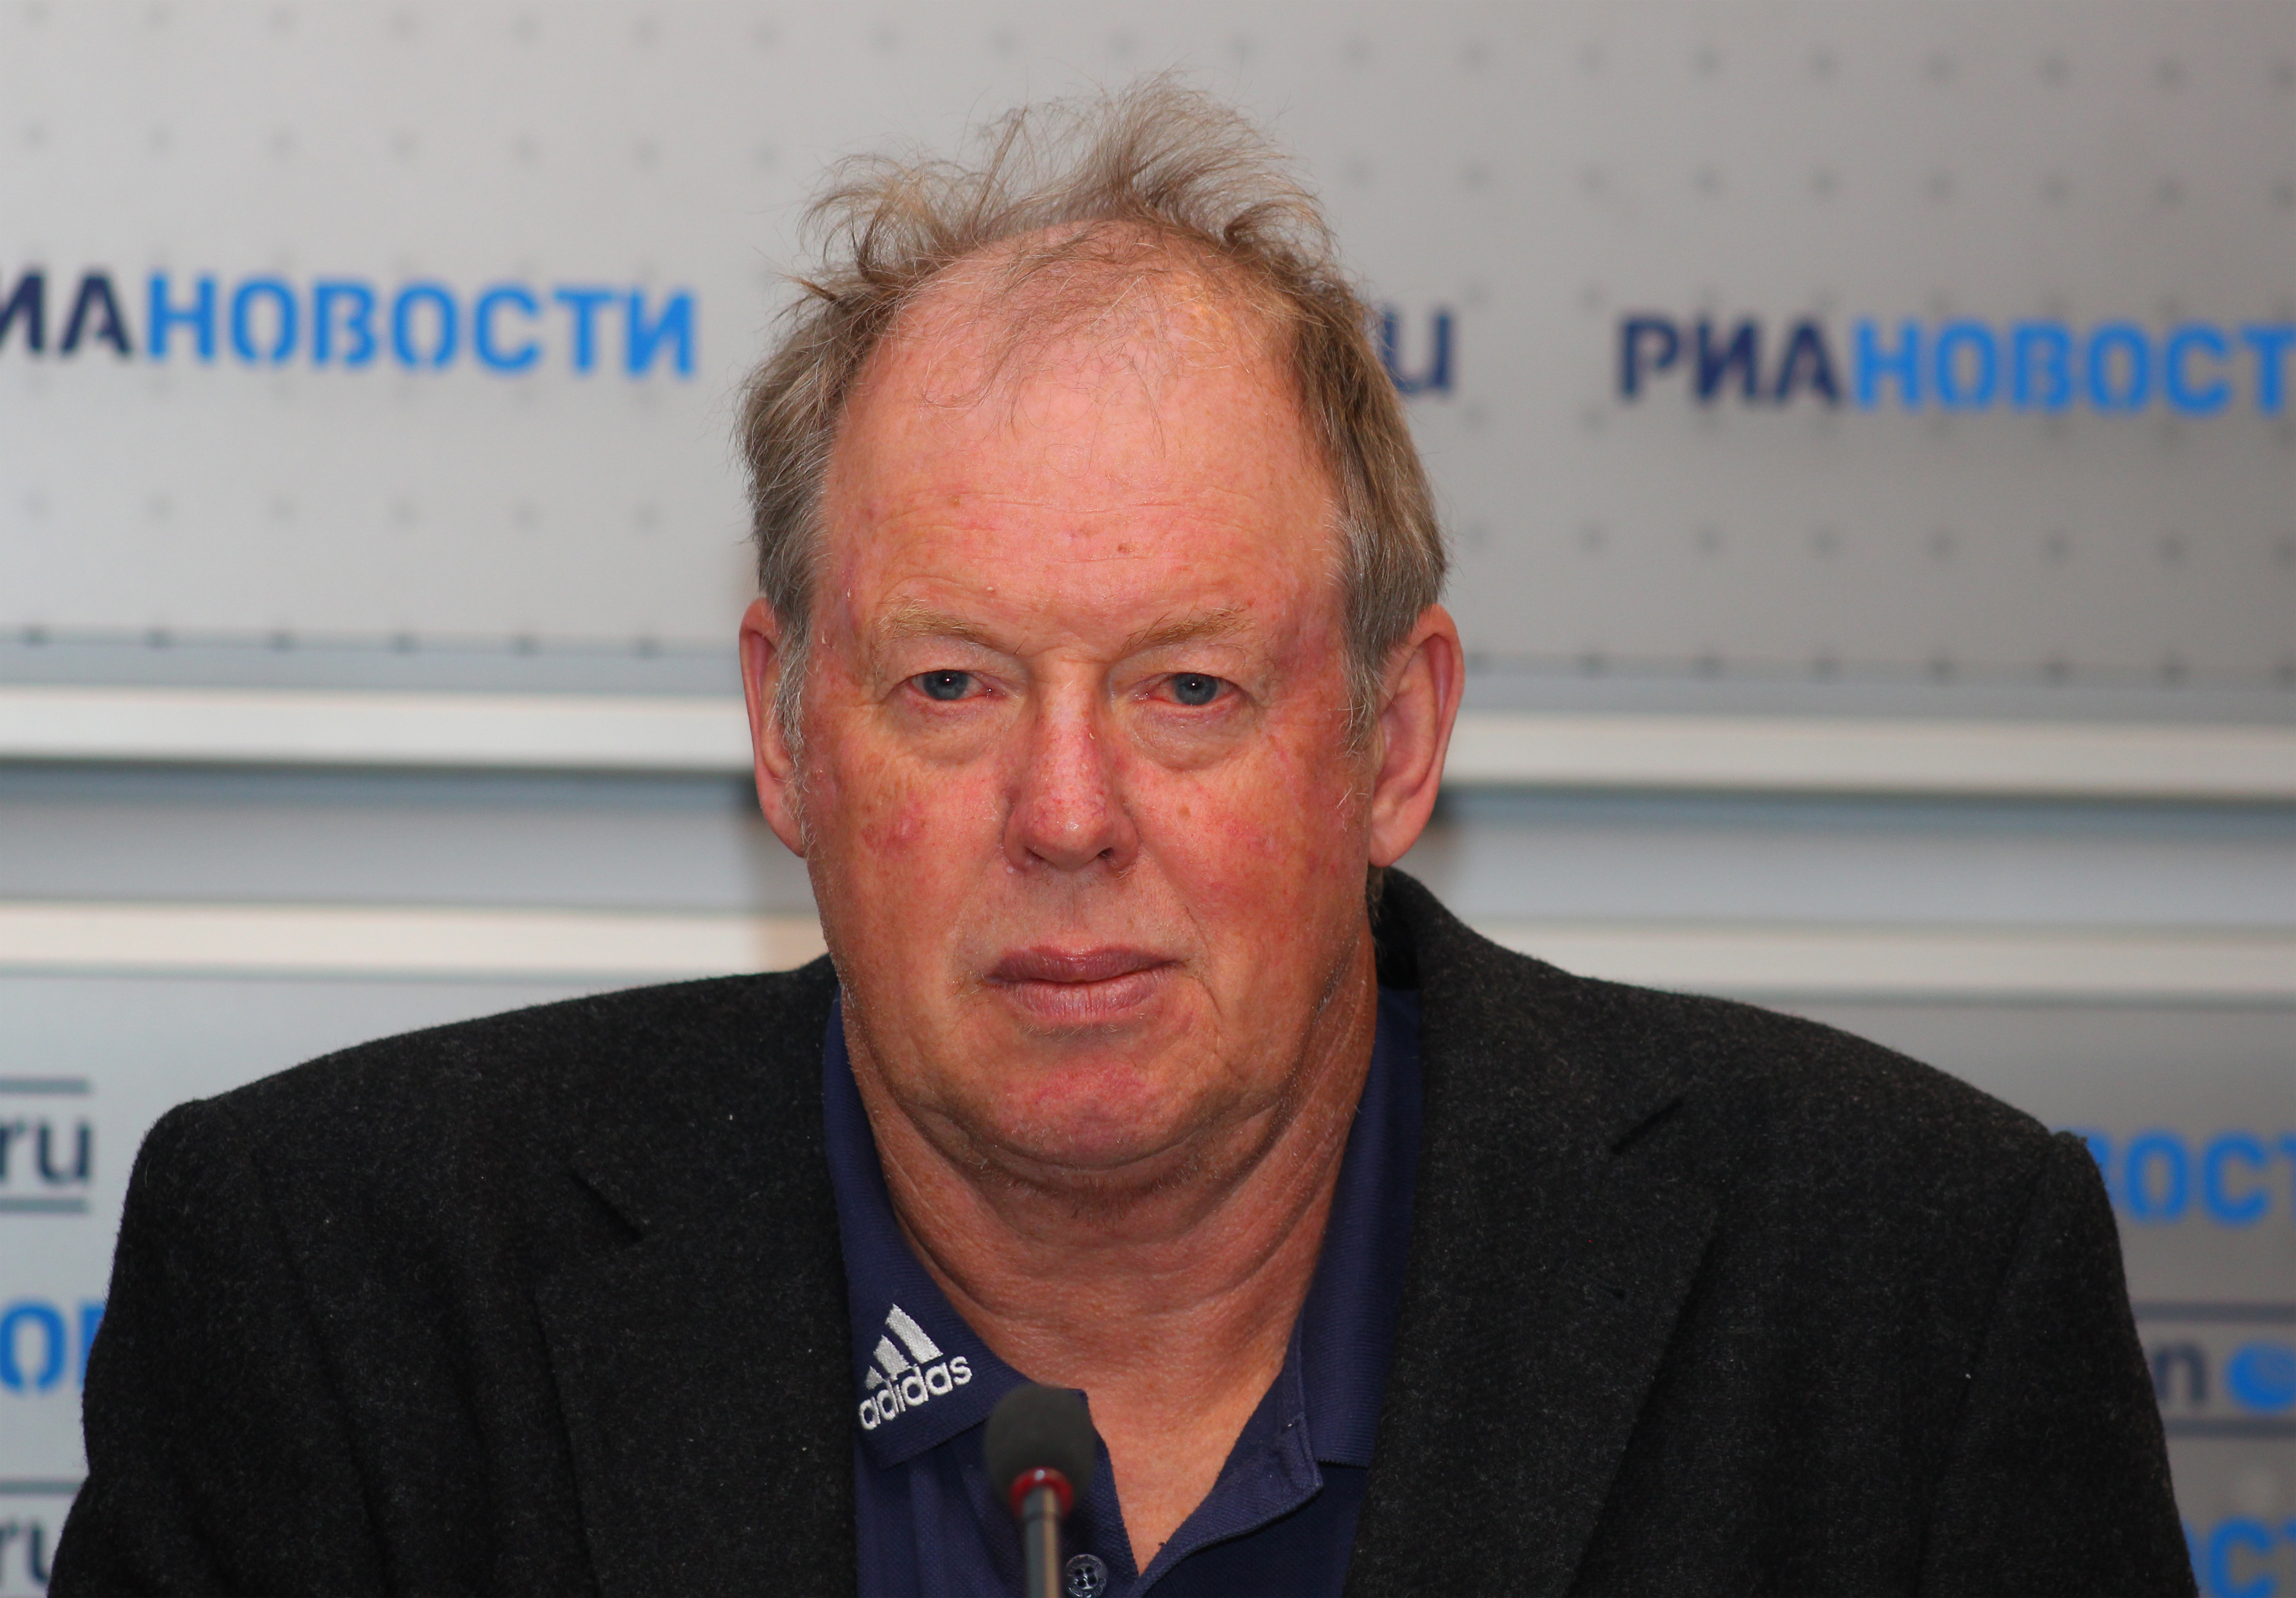 Wolfgang Pichler in Moscow, Russia in May 2011